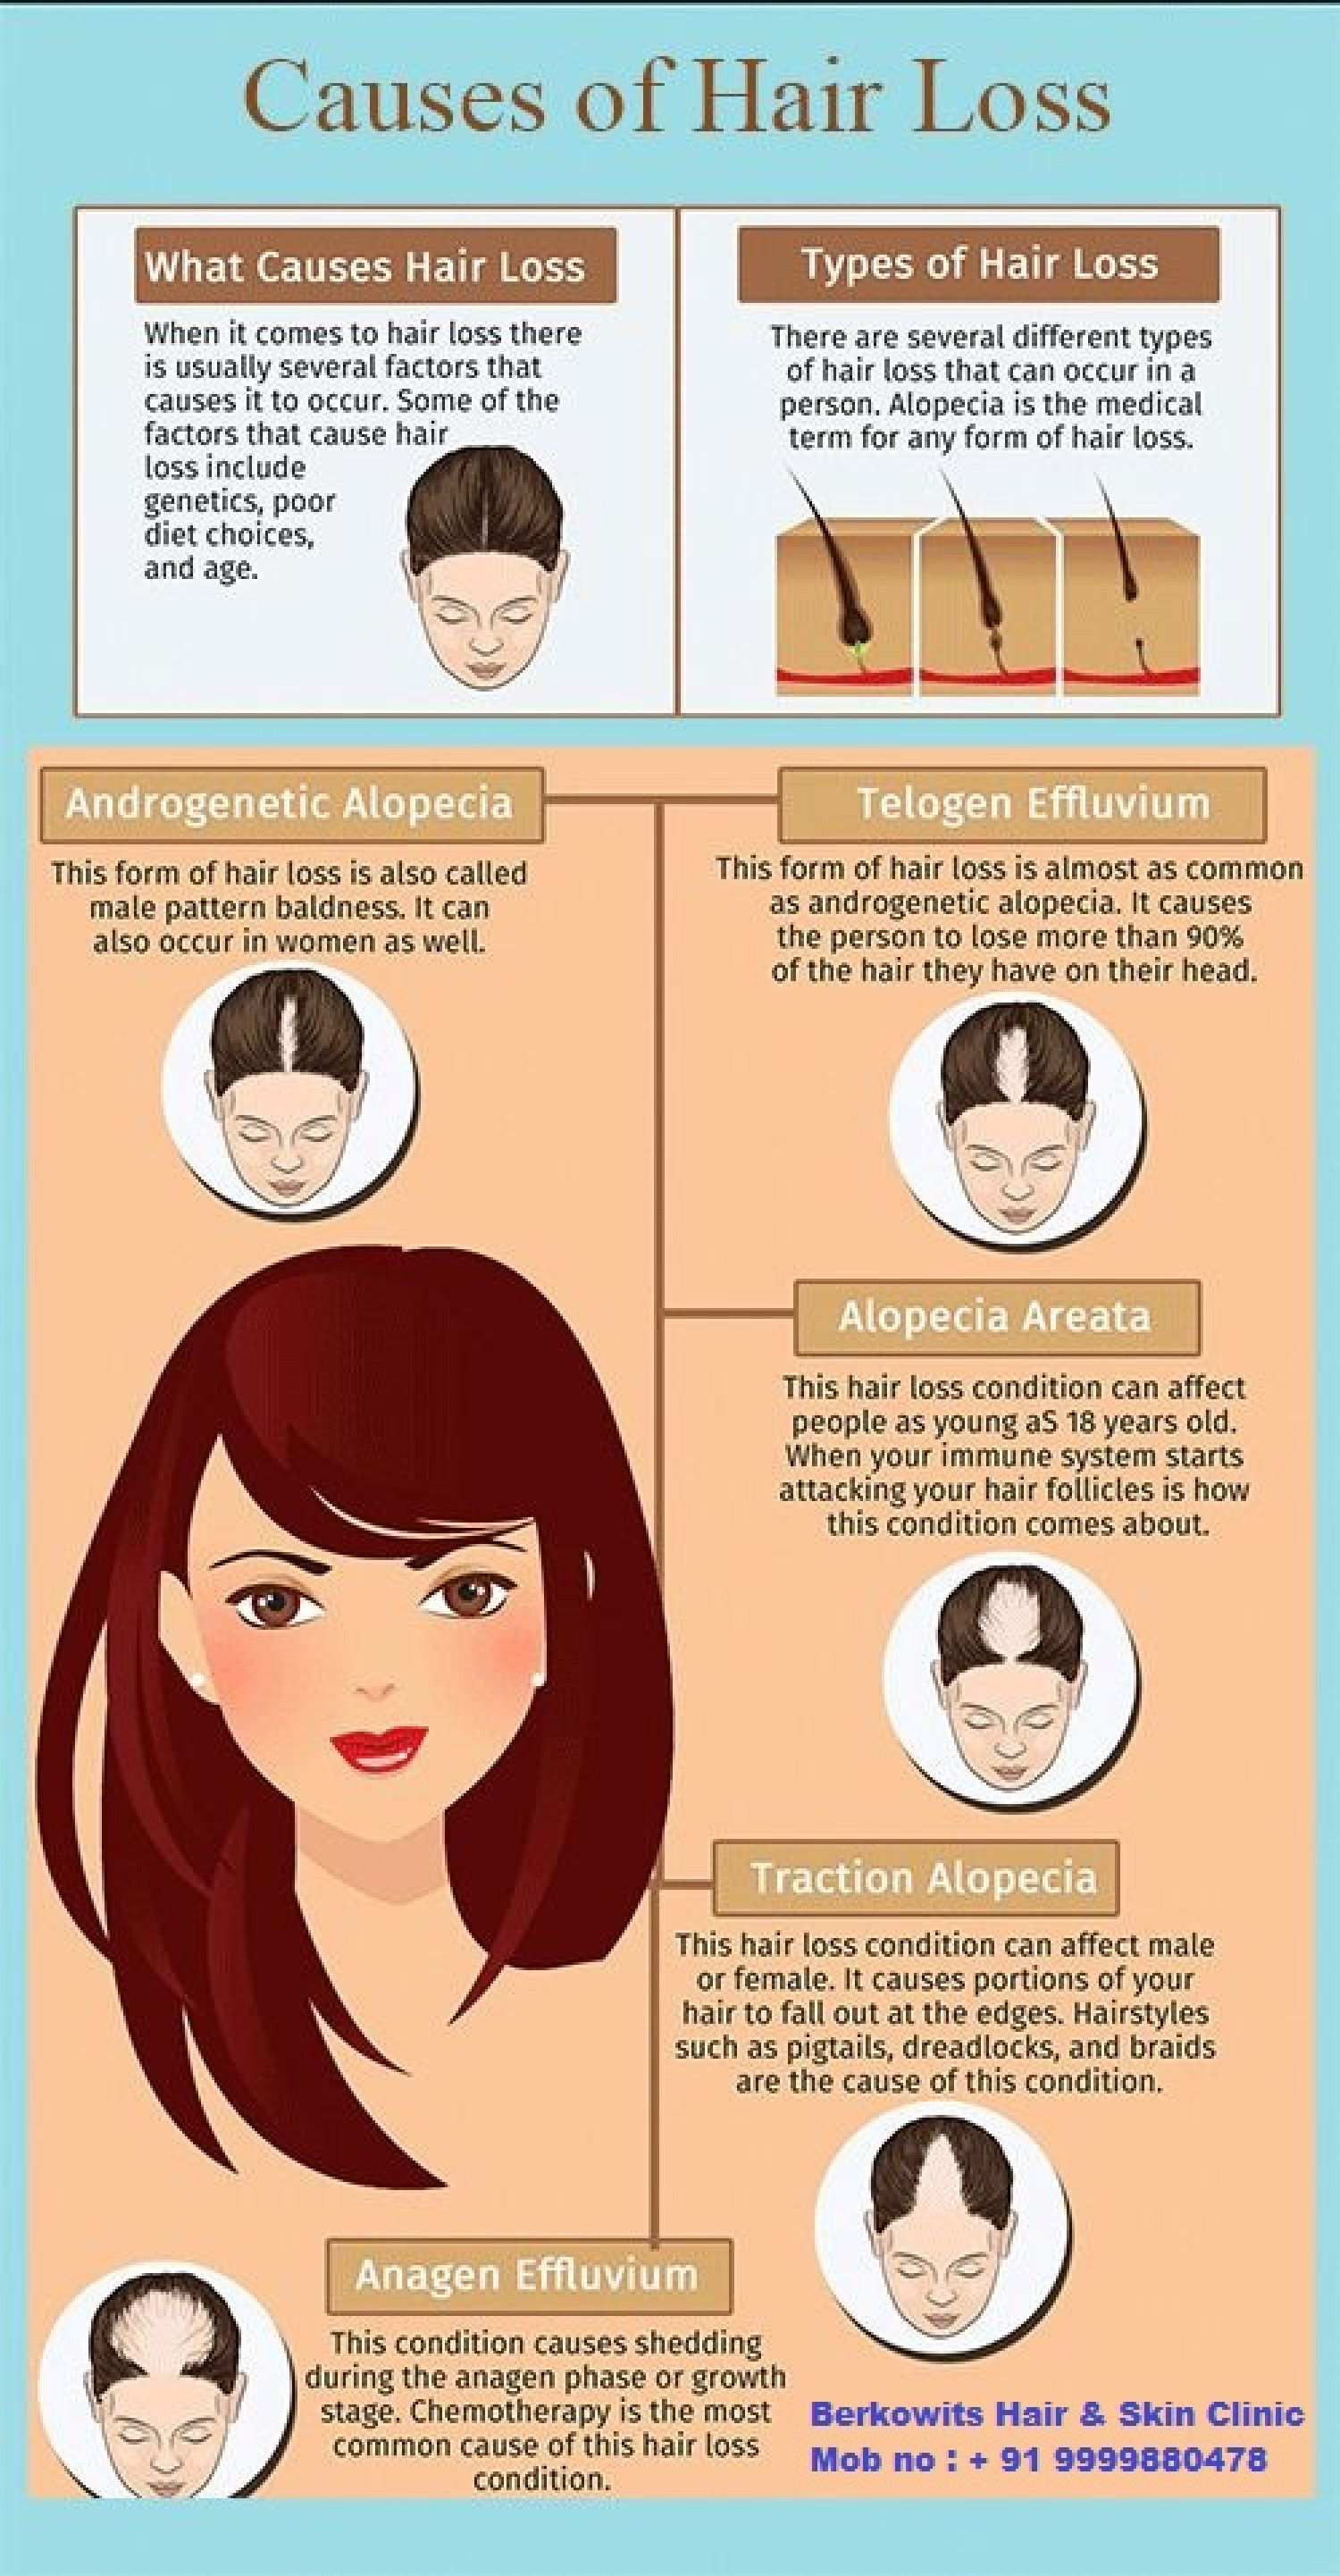 Some Of The Factors That Cause Hair Loss Include Genetics Poor Diet Choice S And Age Hair Loss Hair Transplant Procedure Regrow Hair Naturally